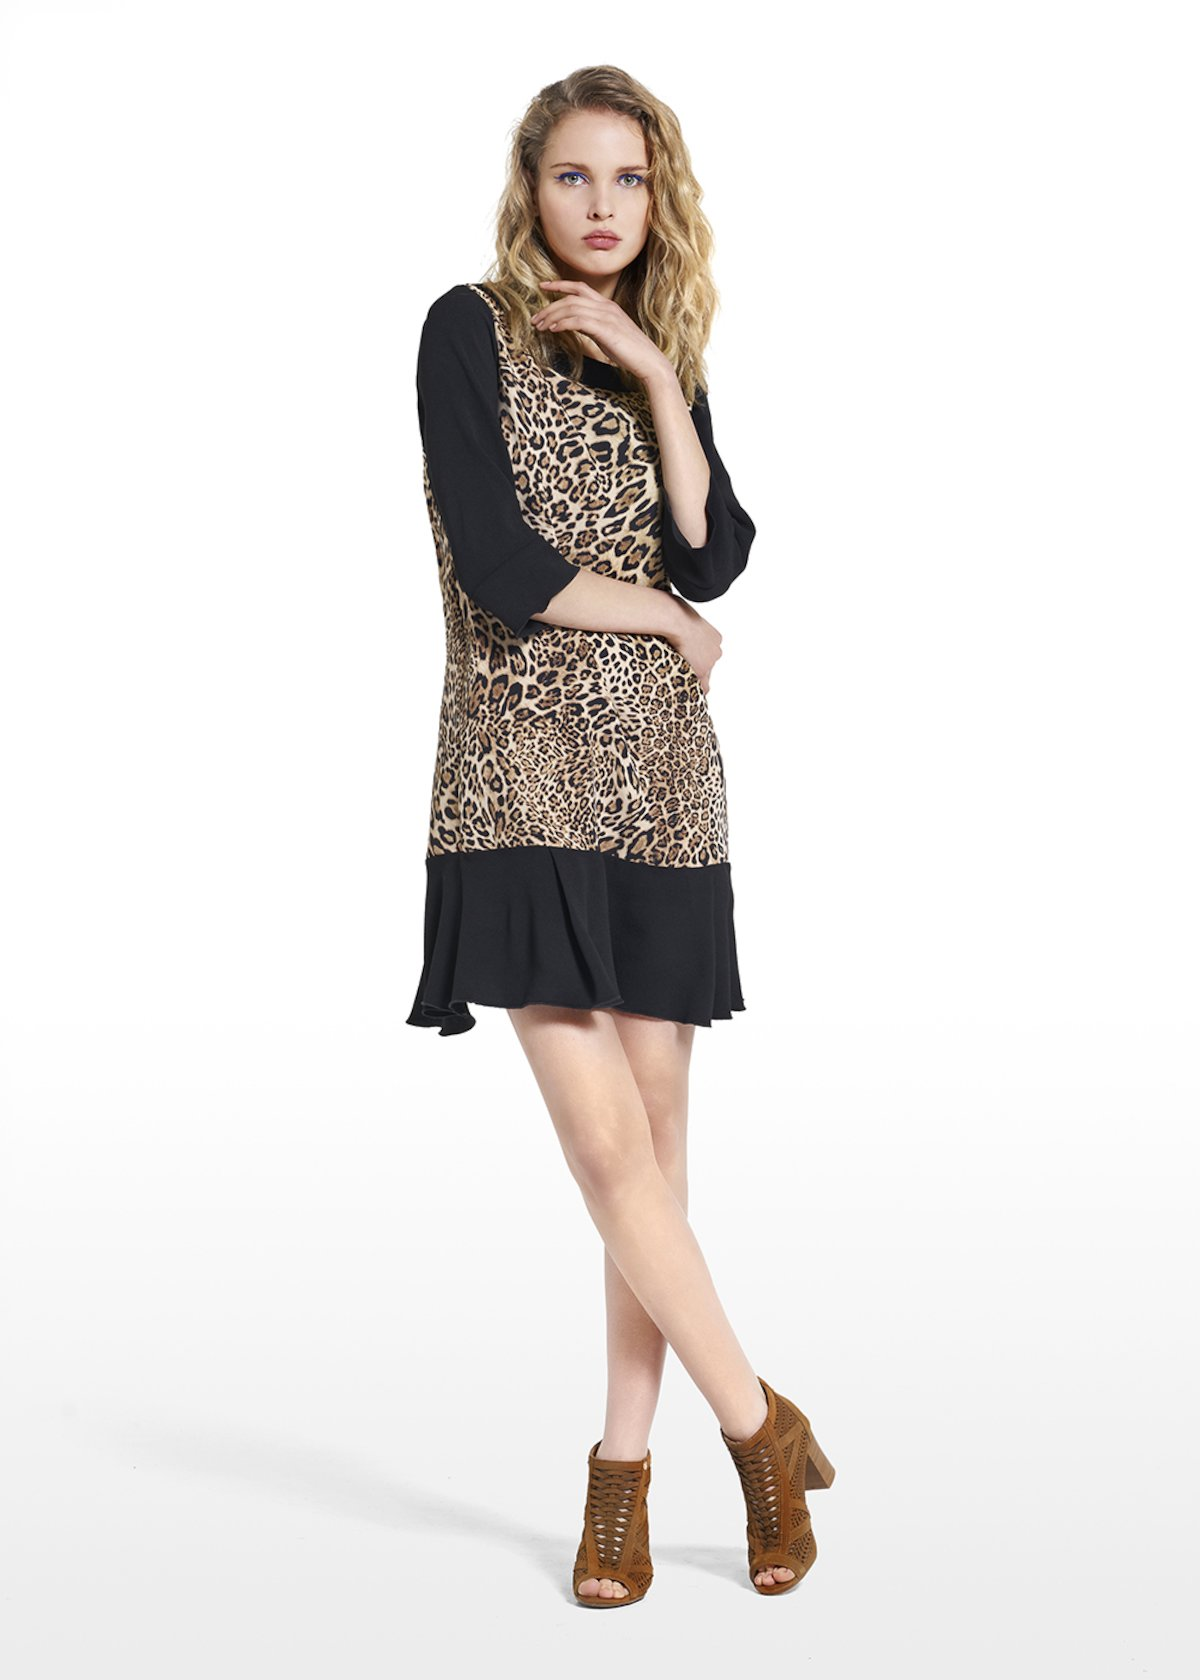 Patterned animalier dress Amour in pepper fabric - Beige / Black Animalier - Woman - Category image